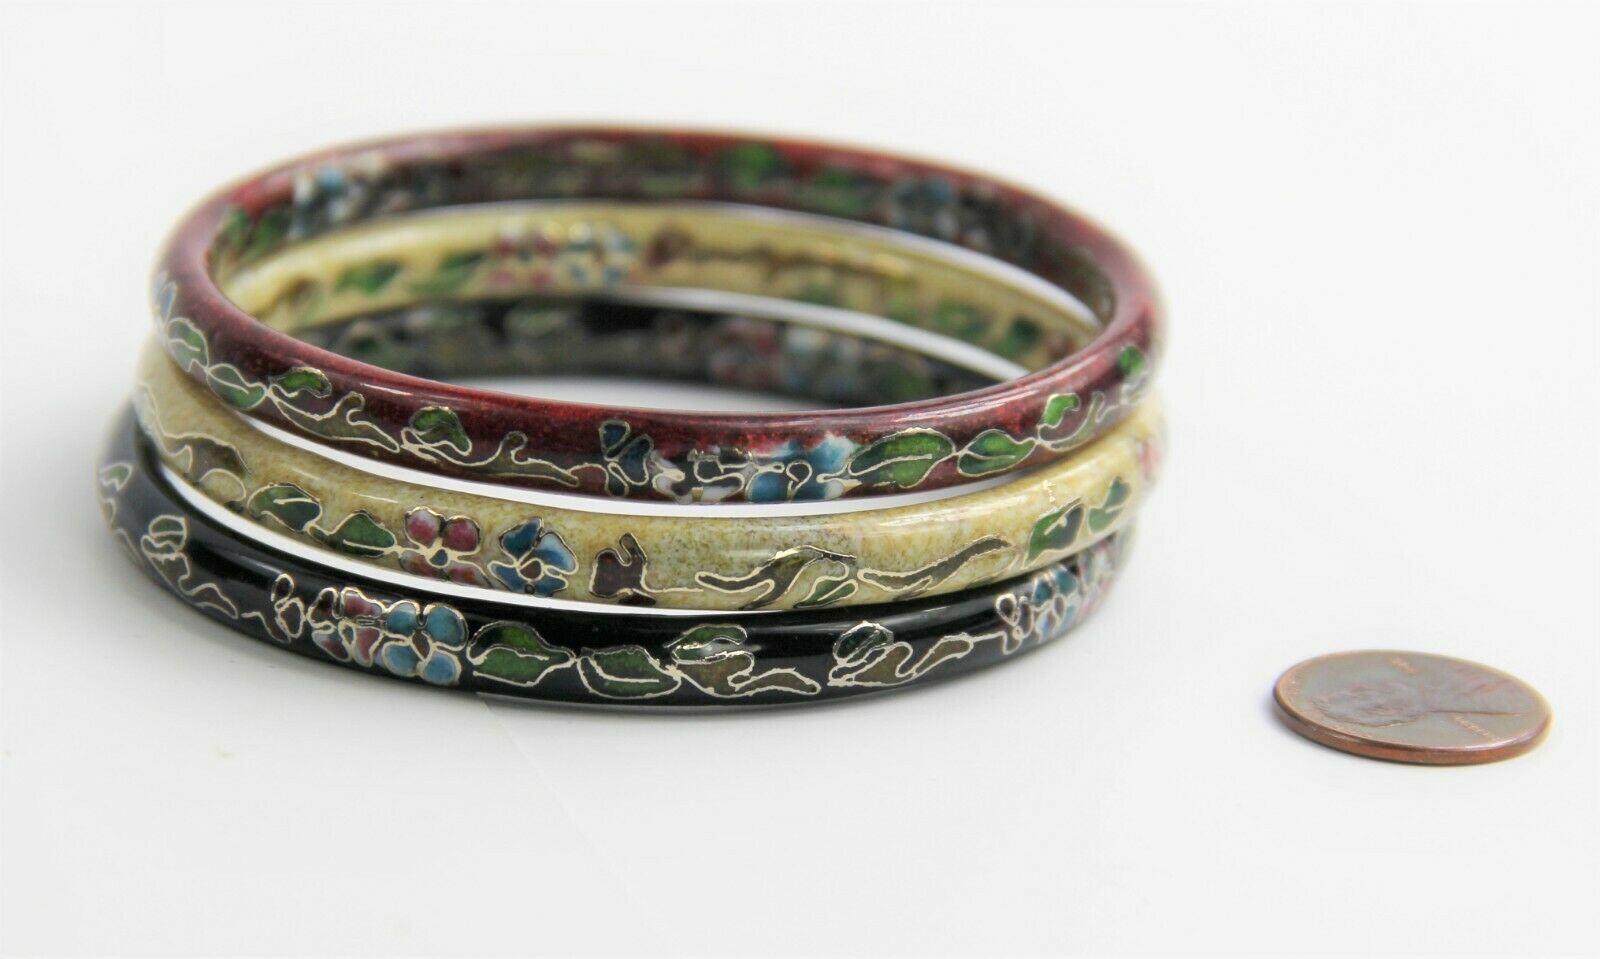 VINTAGE ESTATE Jewelry CHINESE CLOISONNE ENAMEL LOT OF 3 BANGLE BRACELETS STACK image 3